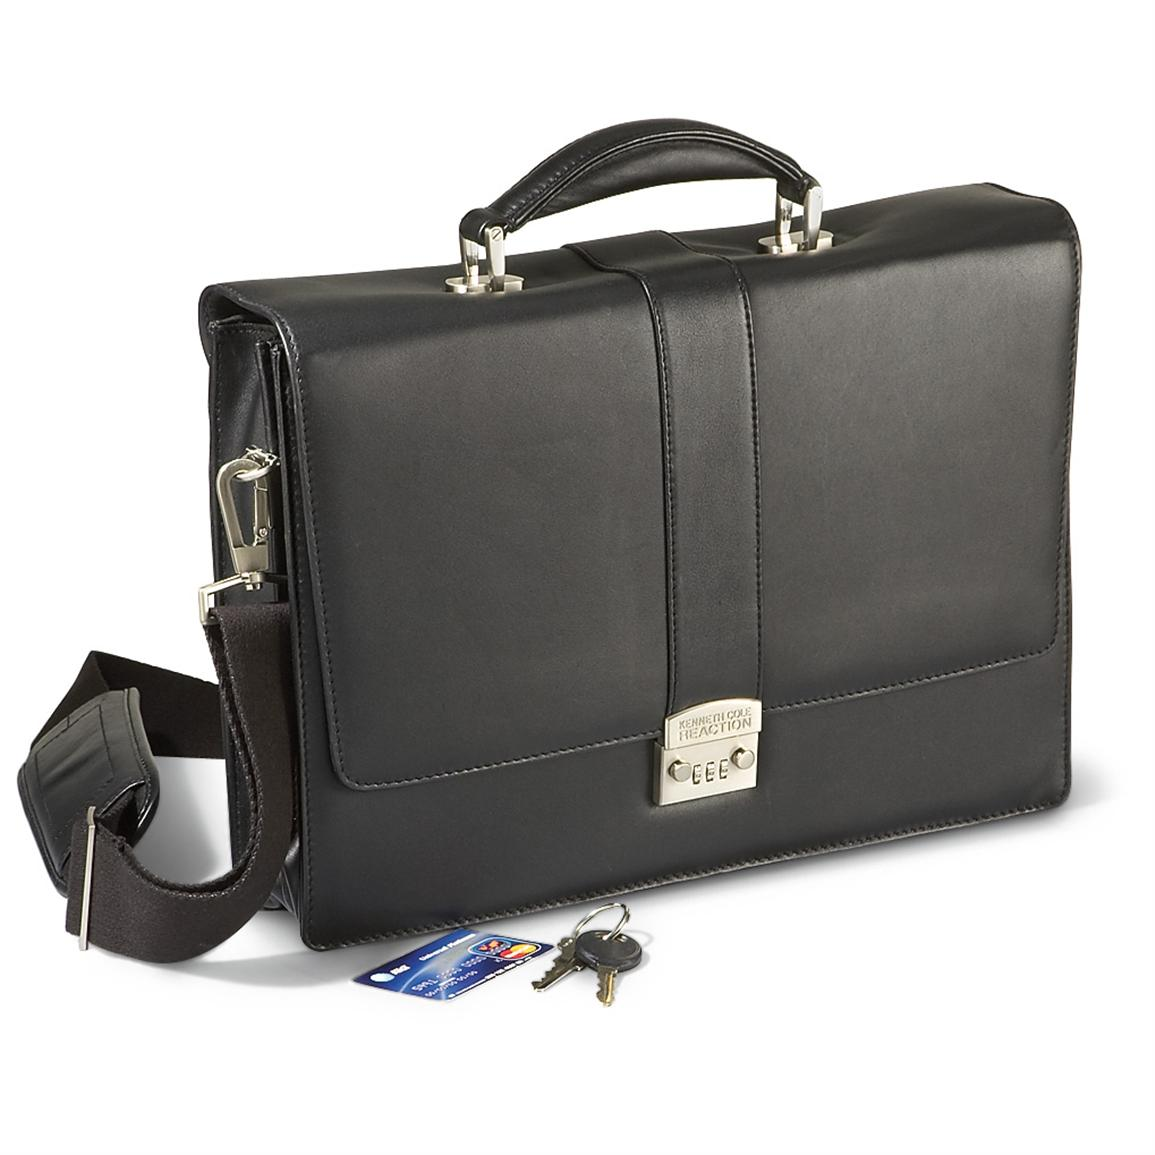 kenneth cole reaction briefcase photo - 1